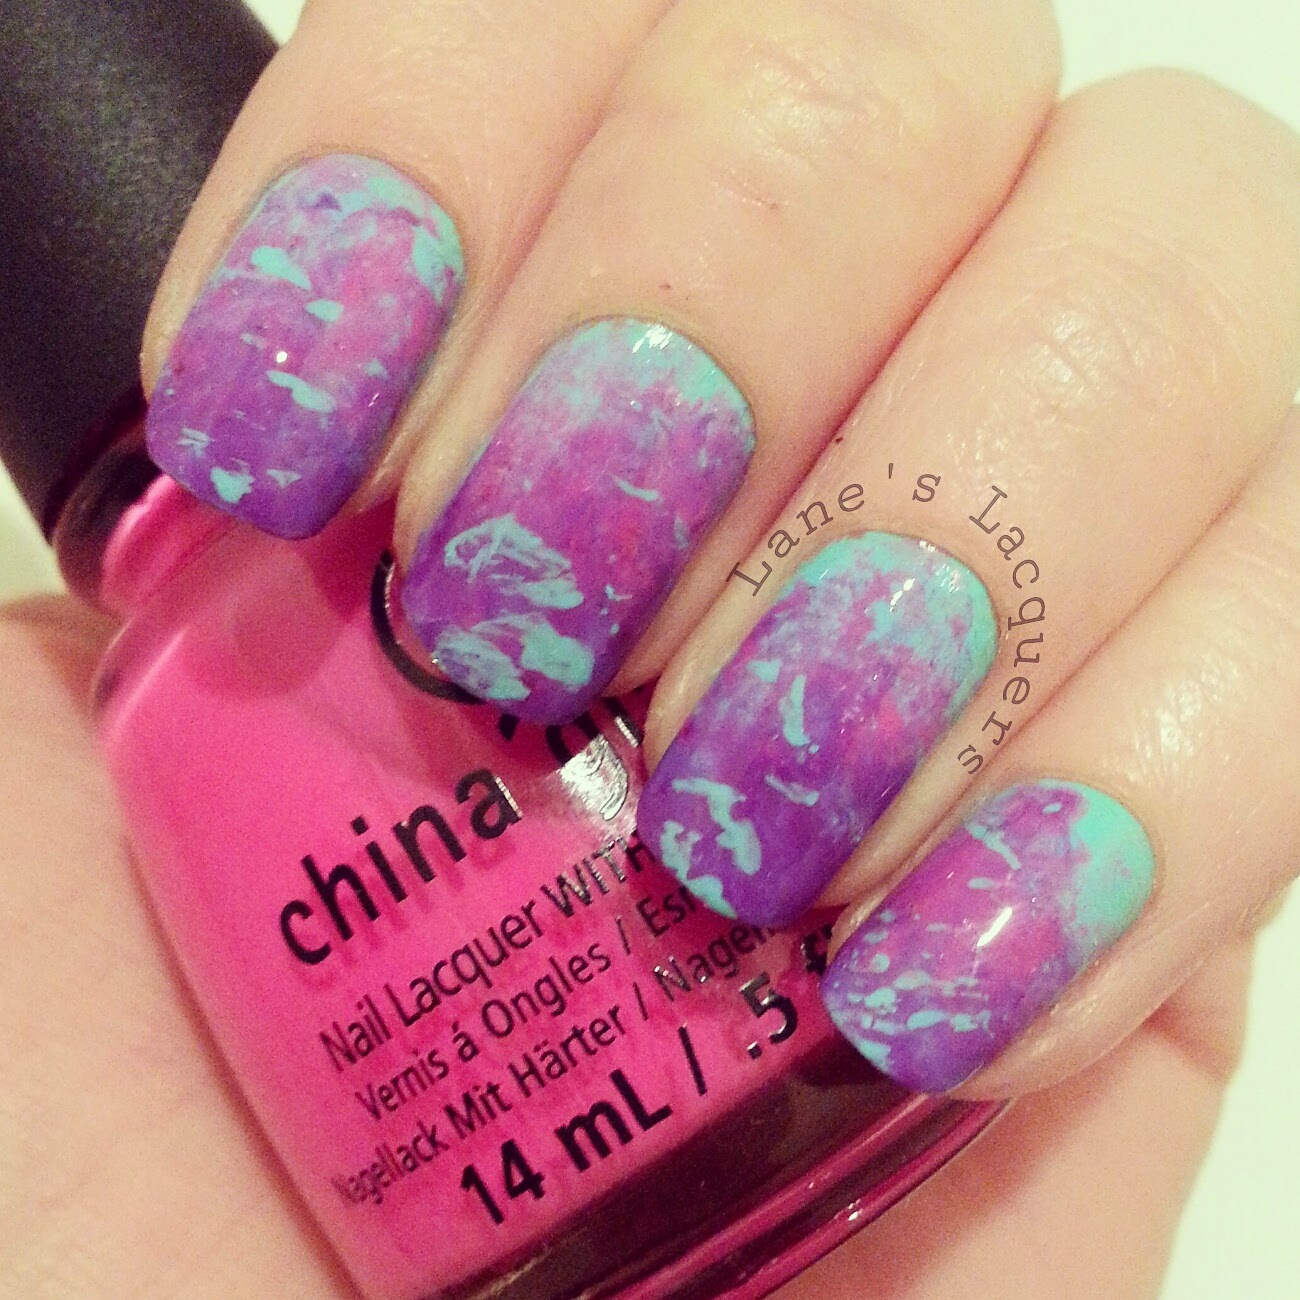 china-glaze-cocktail-inspired-saran-wrap-nail-art (1)